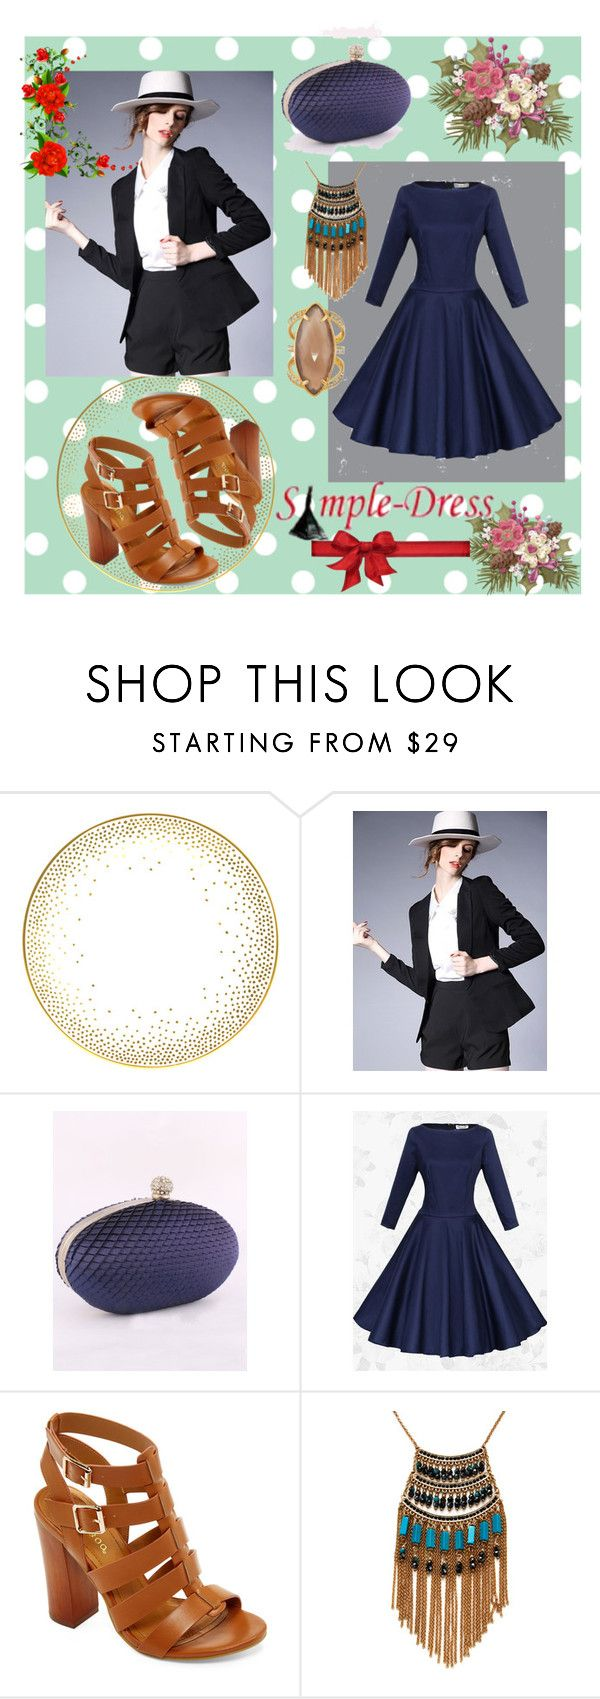 """""""SIMPLEDRESS #25"""" by nizaba-haskic ❤ liked on Polyvore featuring Kelly Wearstler, Bamboo, Leslie Danzis and Henri Bendel"""